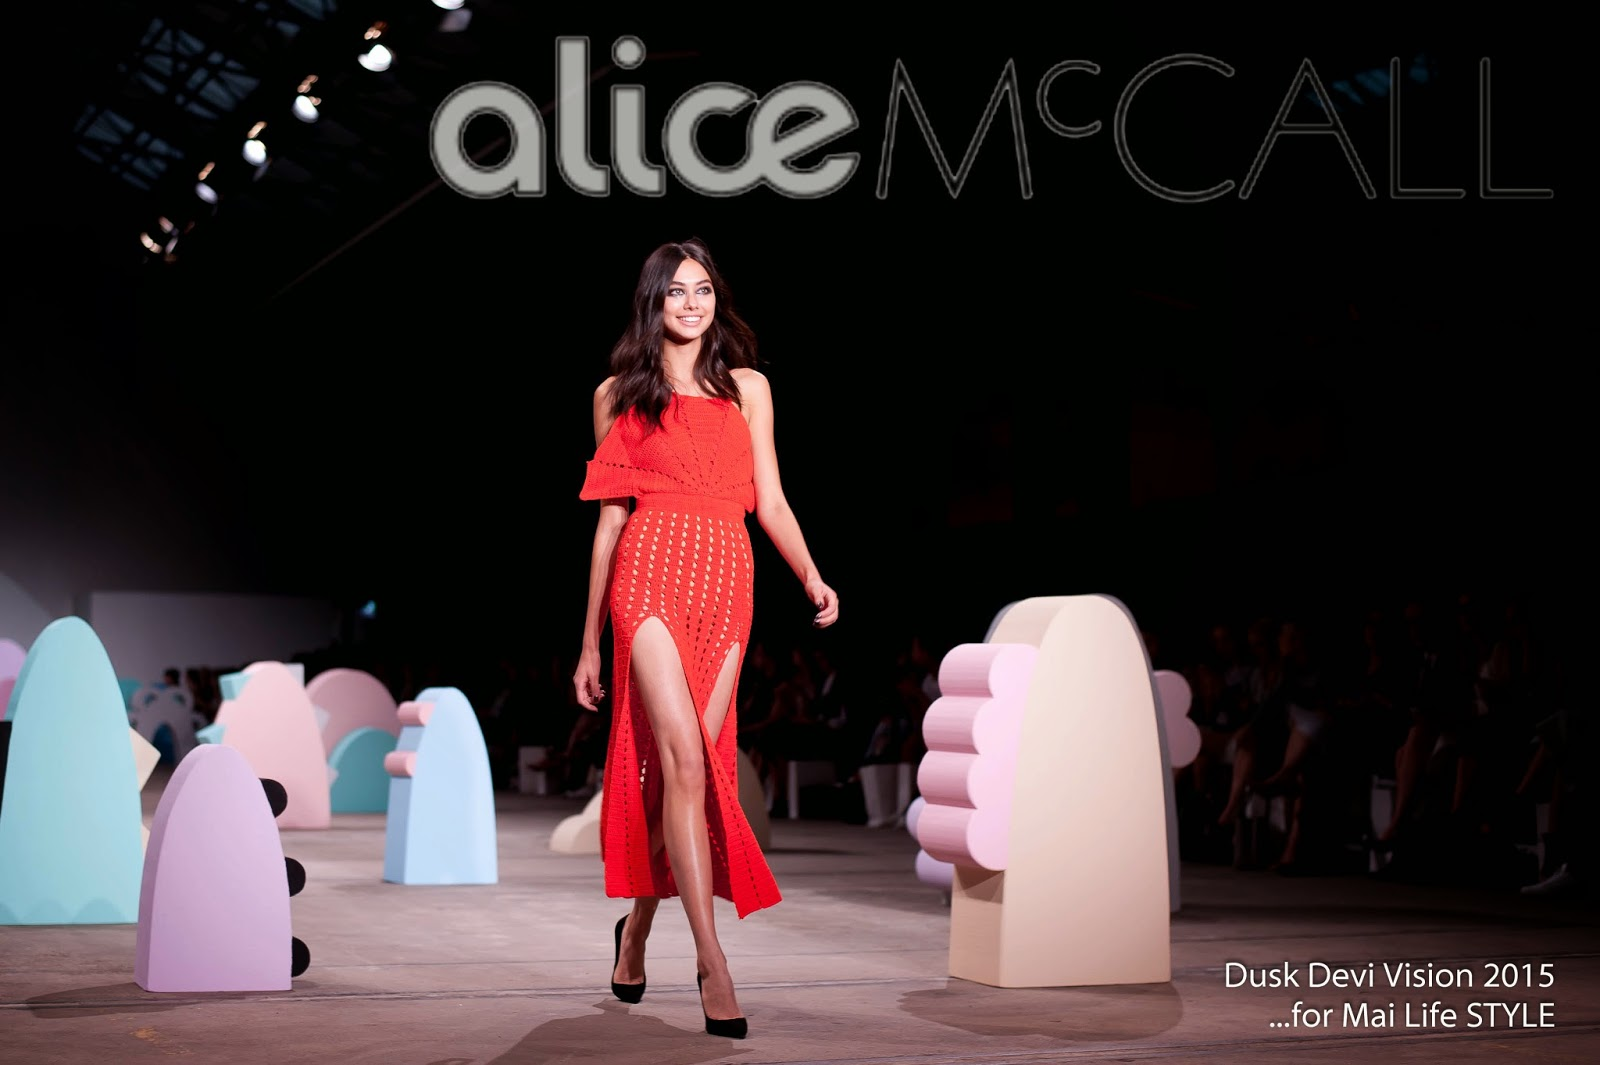 Alice McCall 'One Track Love' MBFWA 2015 | Dusk Devi Vision Photography | www.duskdevi.com